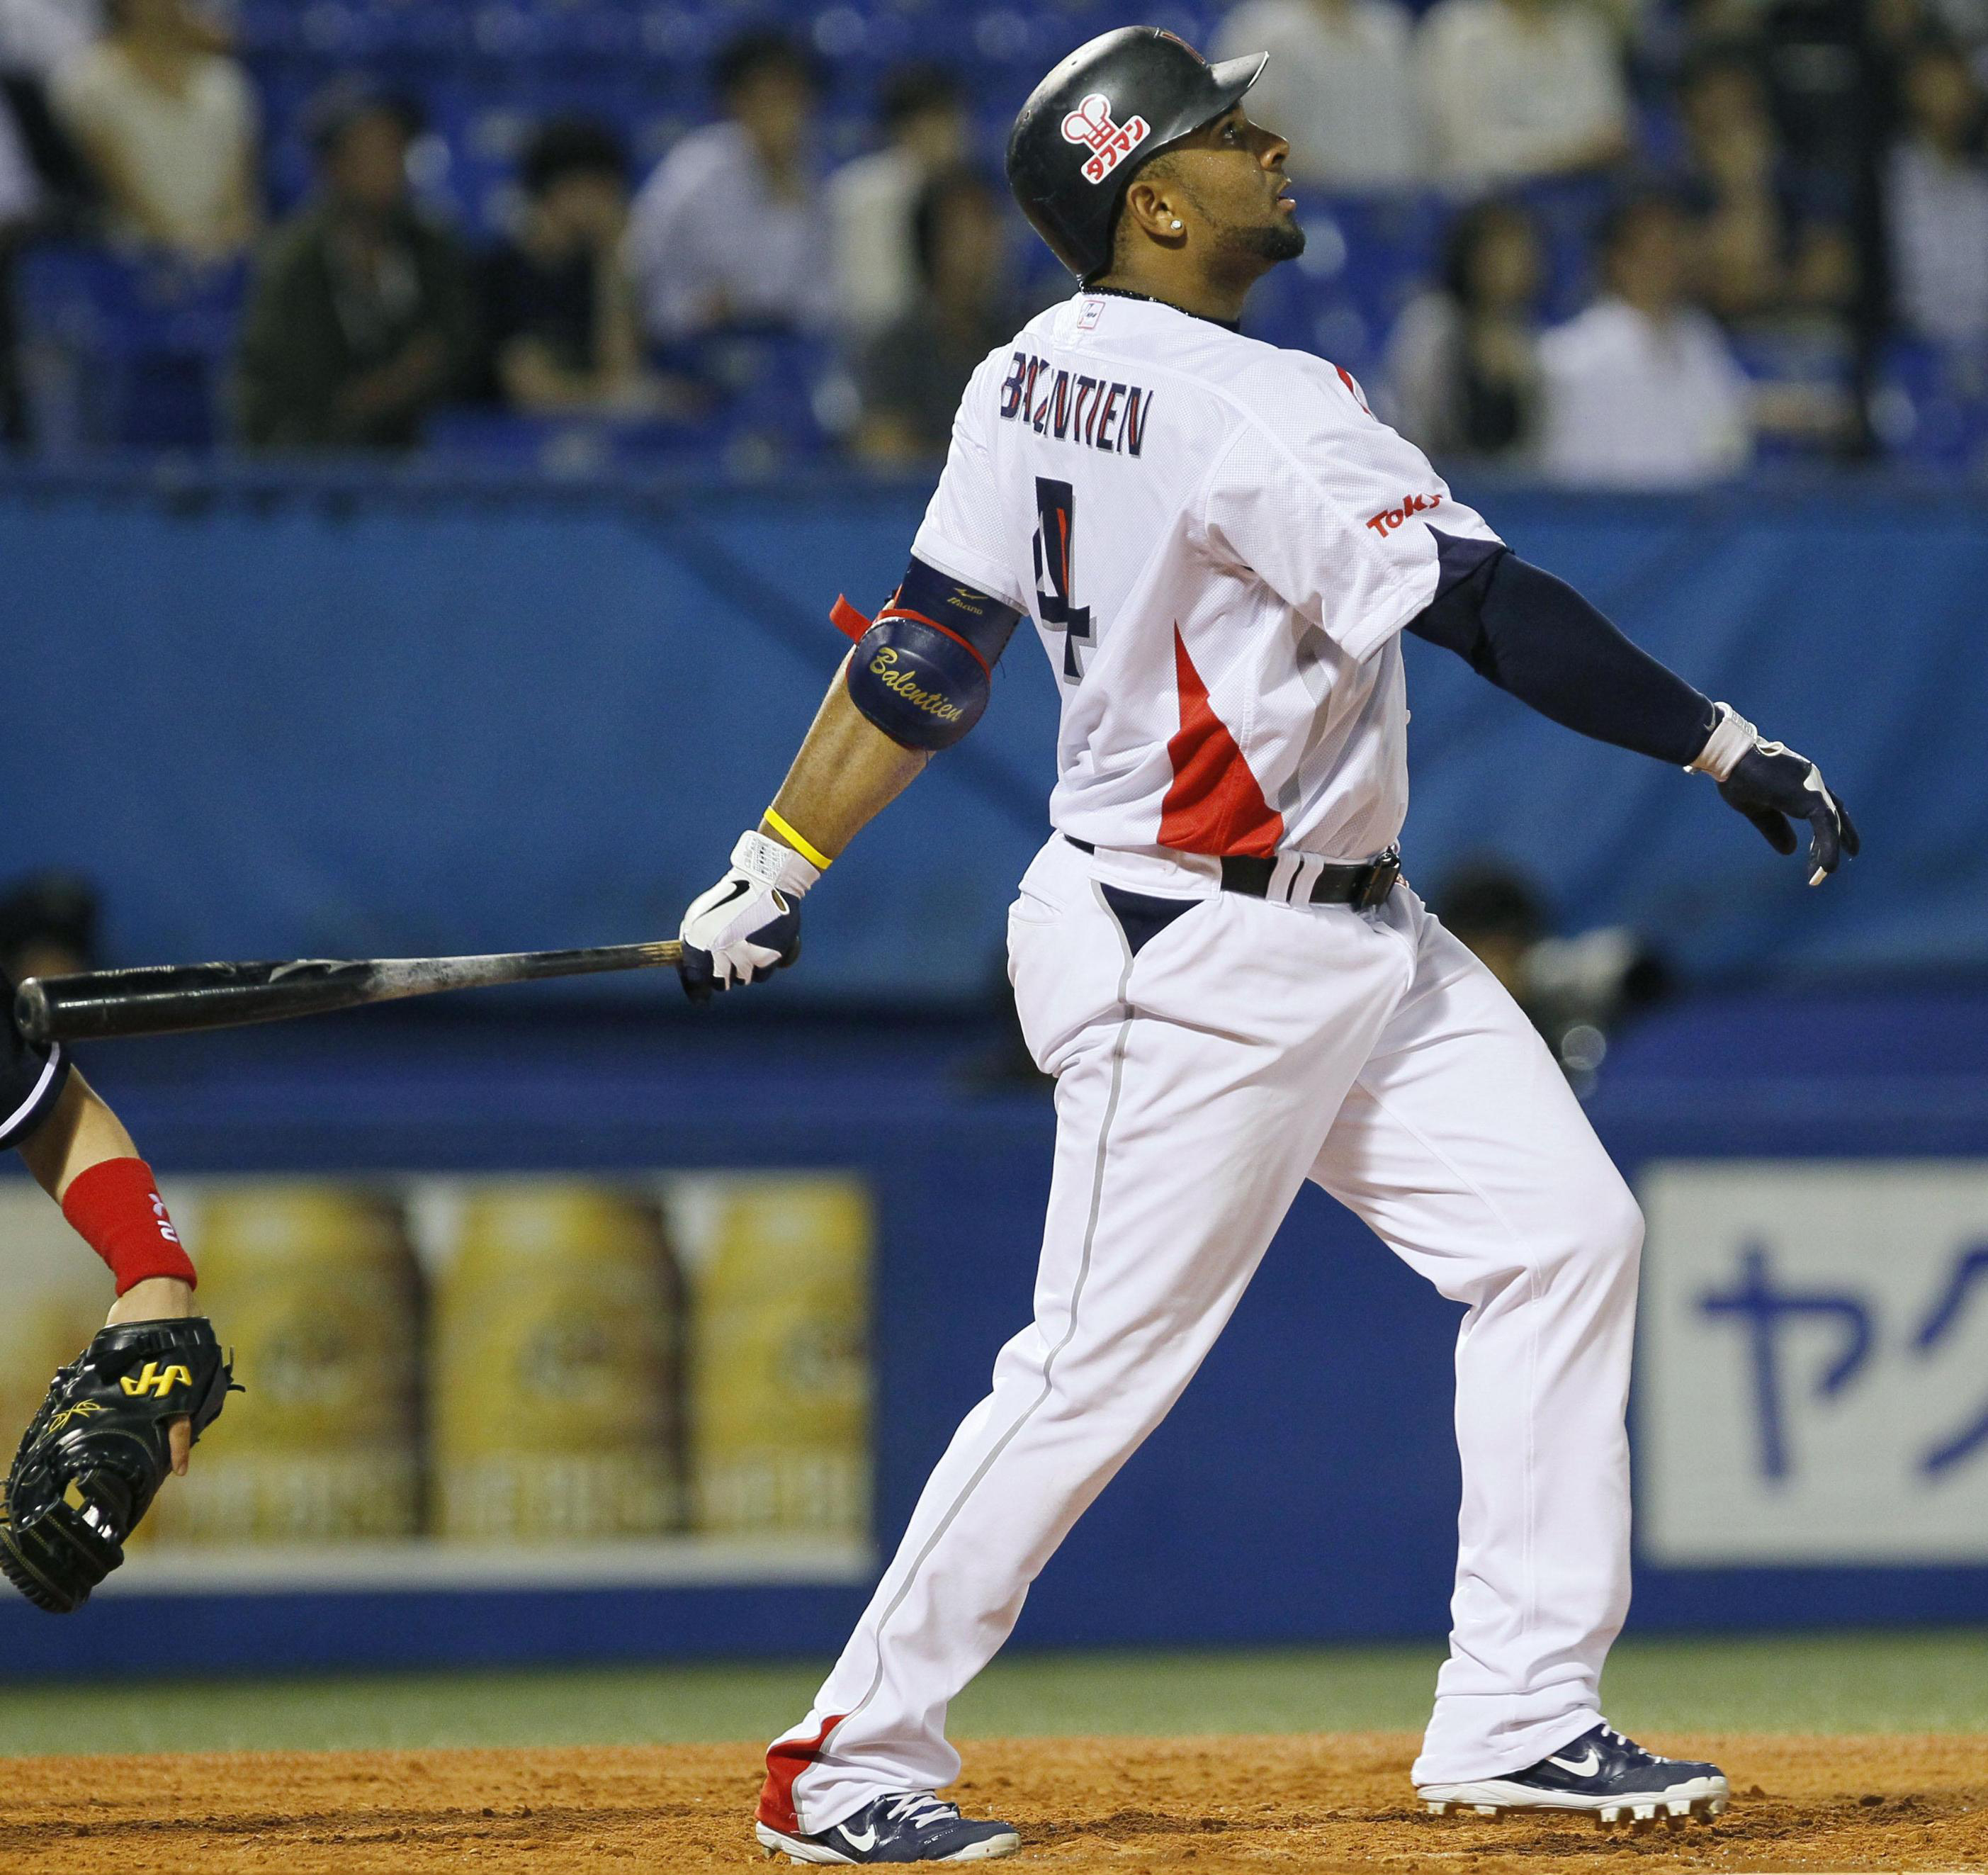 Balentien having a blast during second season in Japan